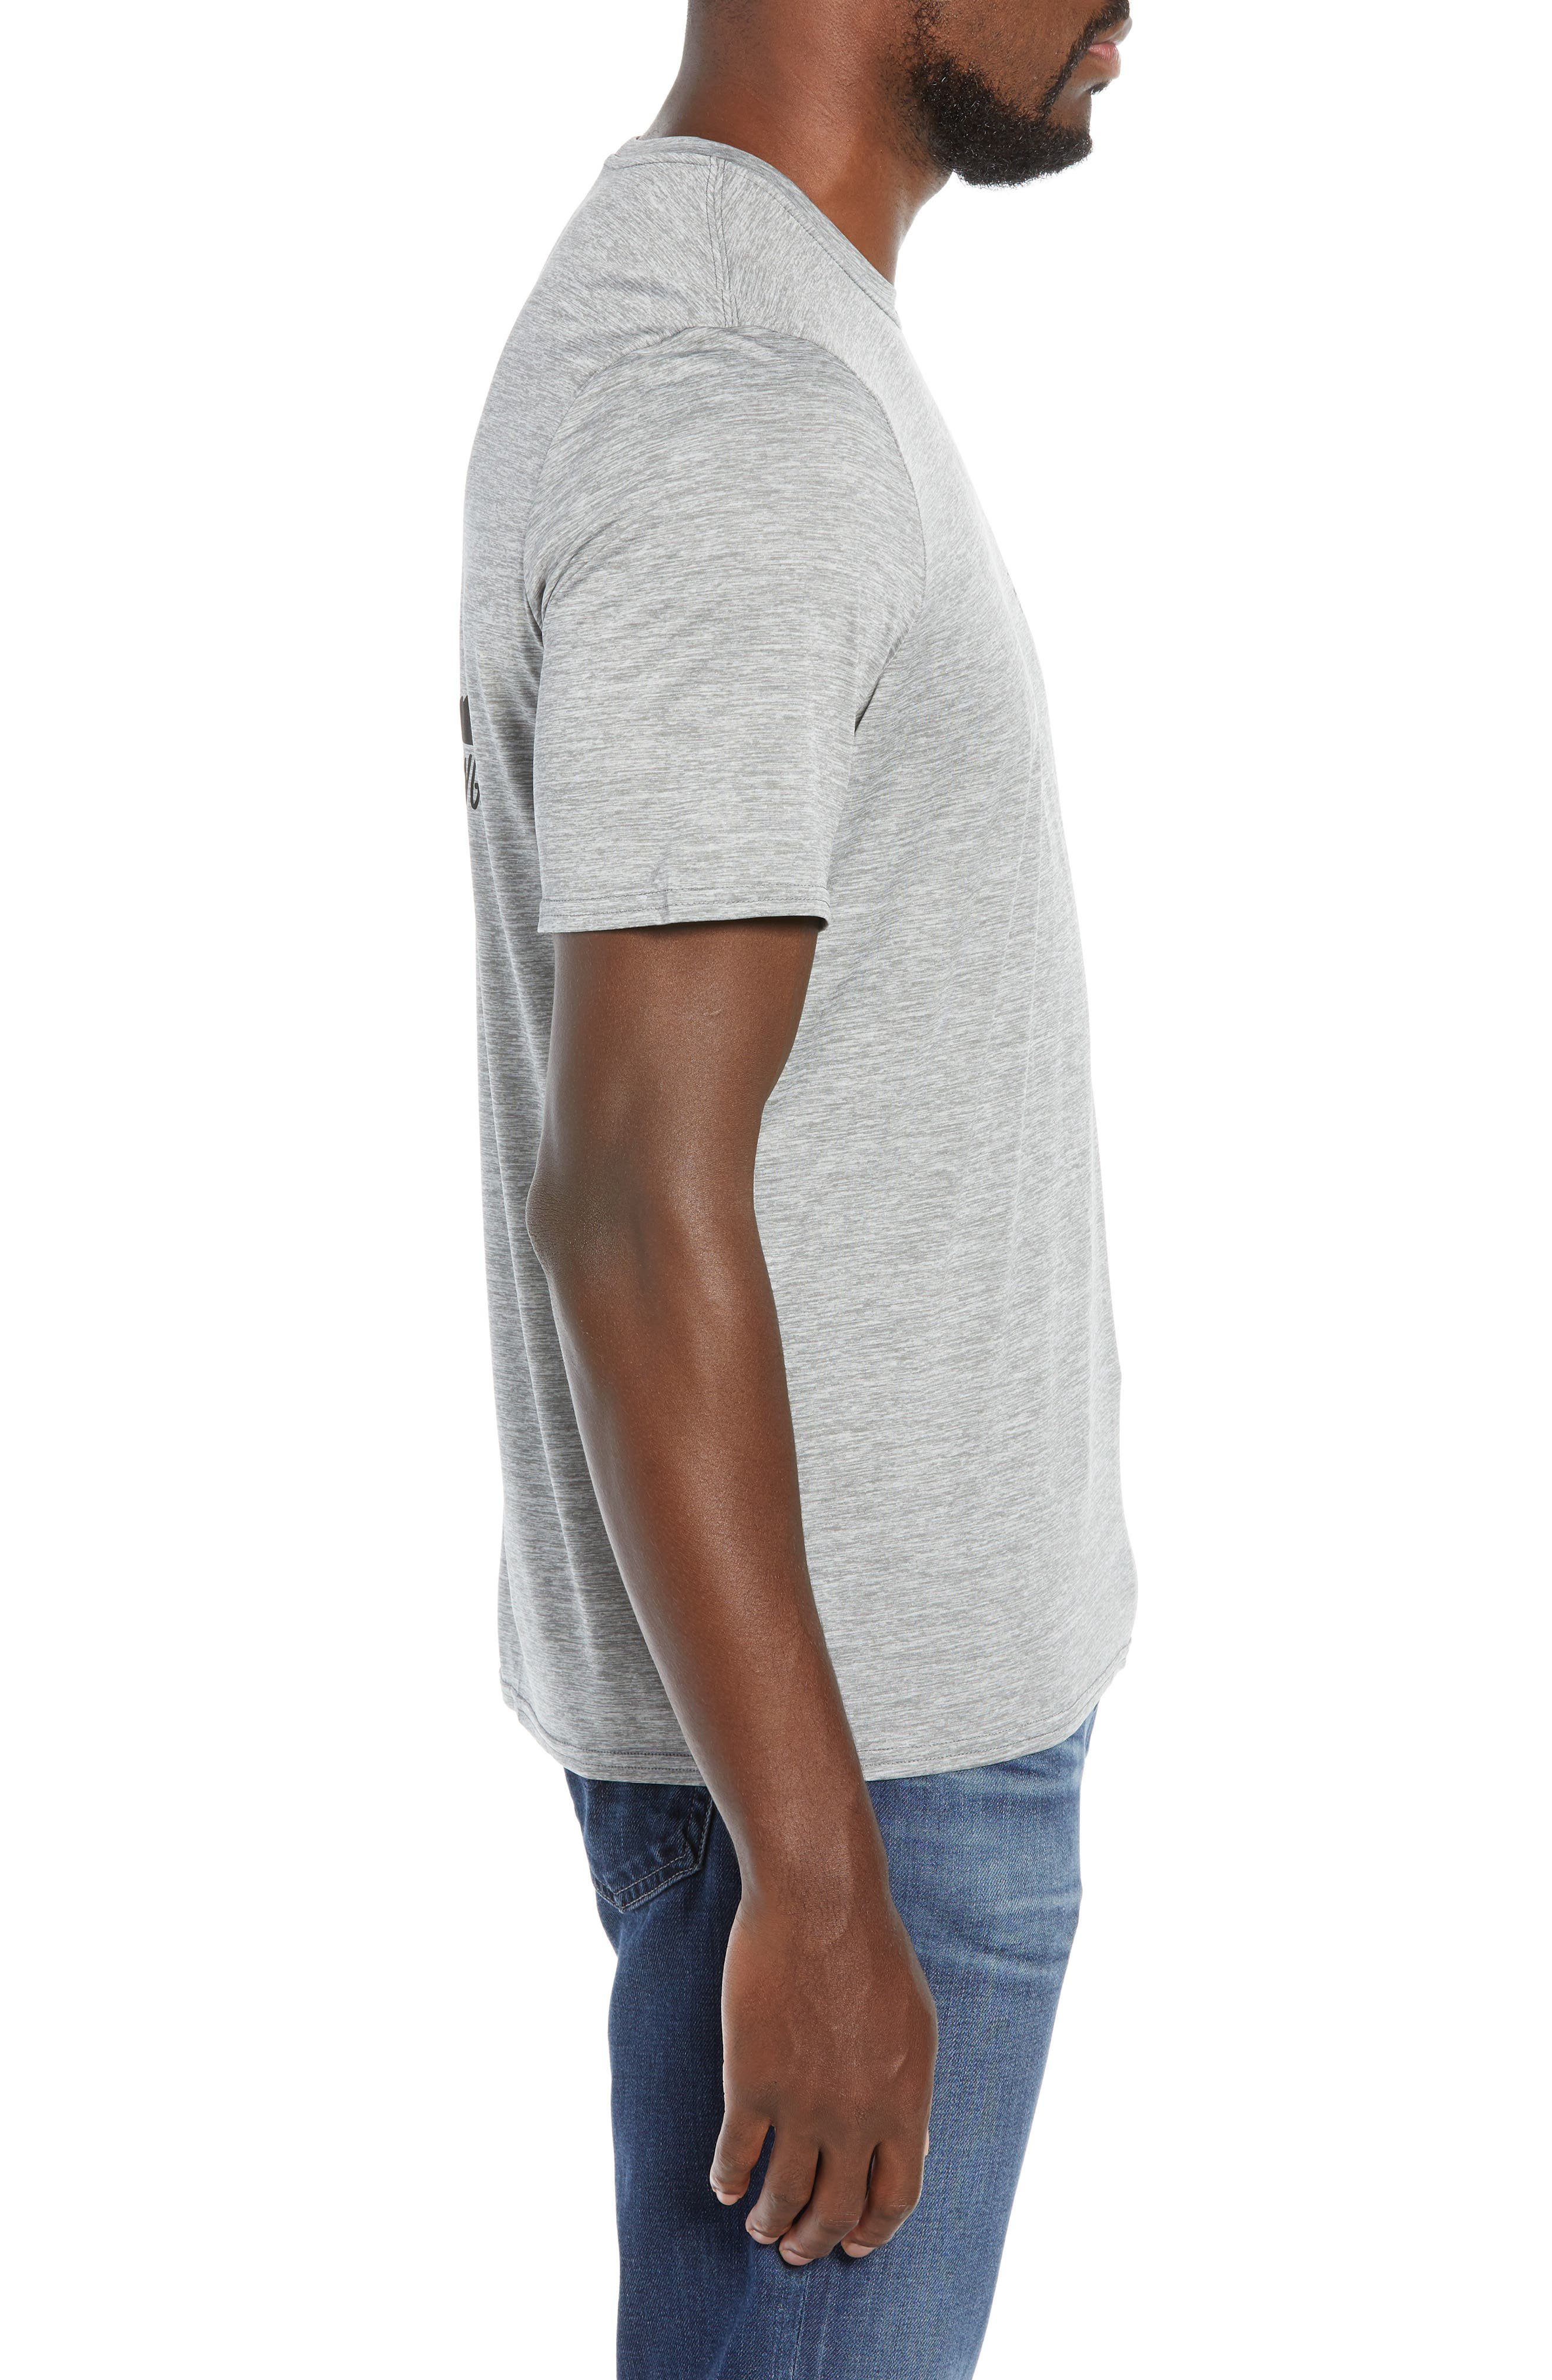 Capilene<sup>®</sup> Daily Regular Fit T-Shirt,                             Alternate thumbnail 3, color,                             TRAIL MYSTIC FEATHER GREY